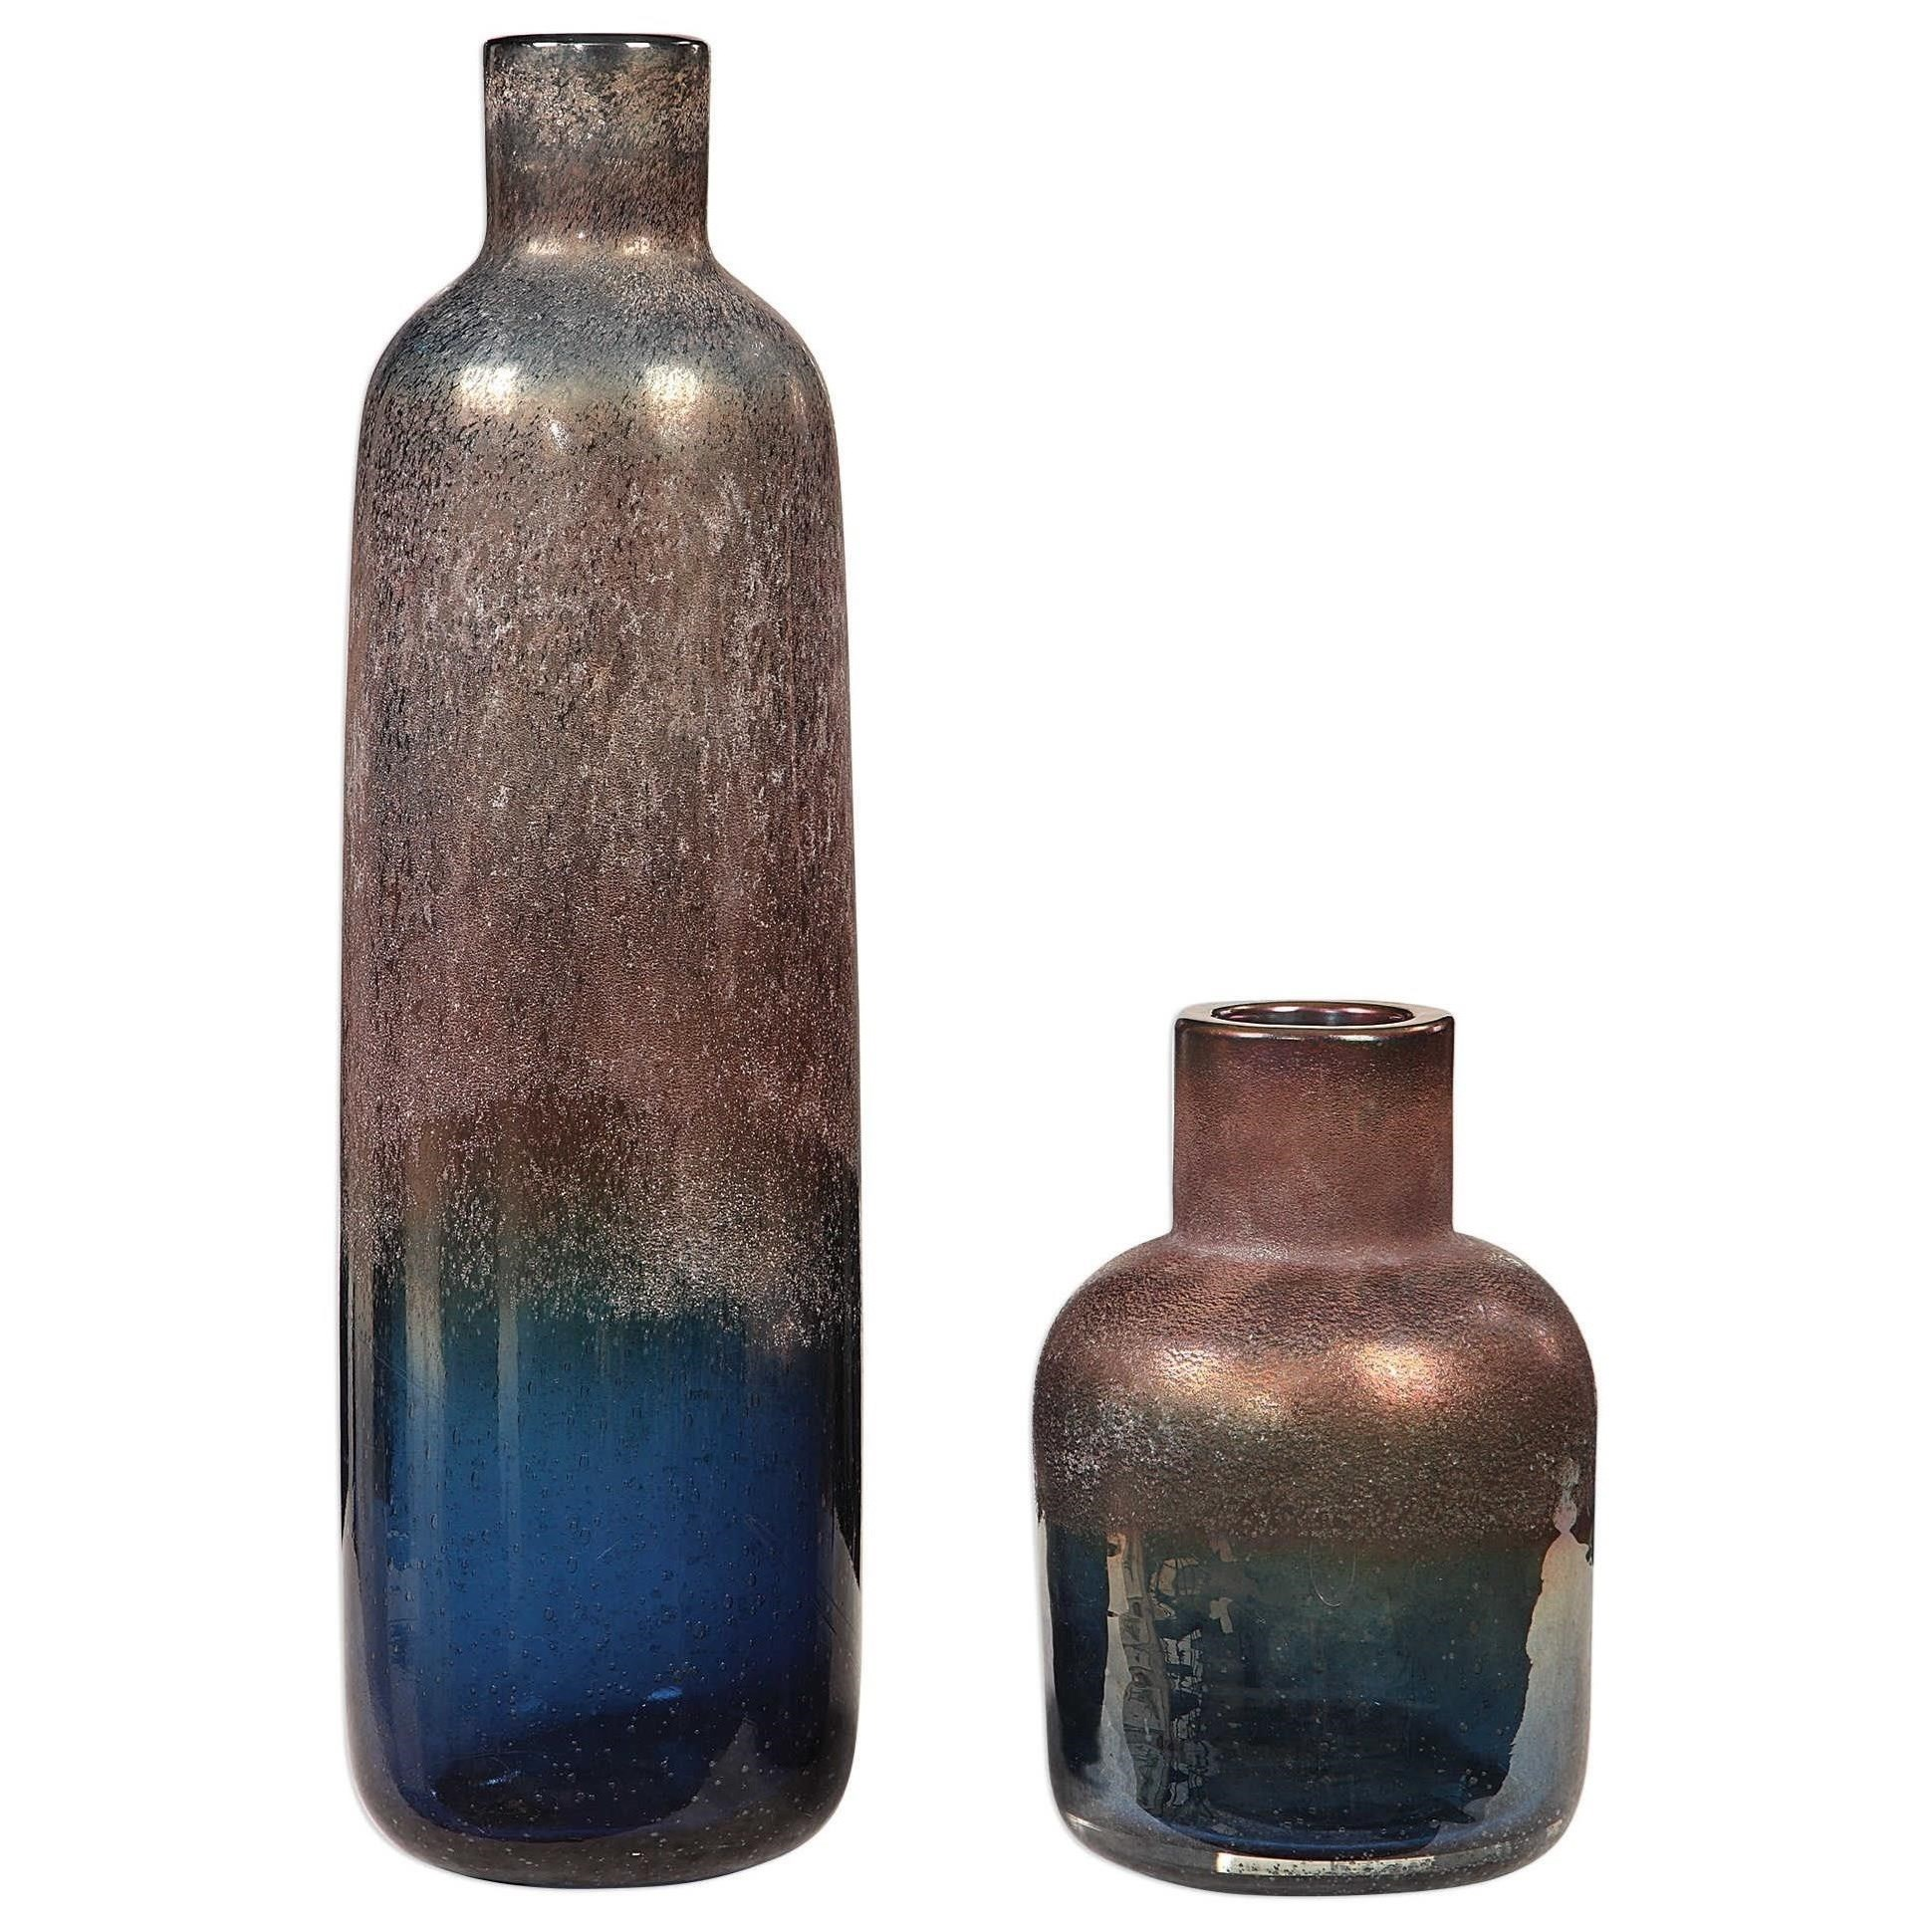 Accessories - Vases and Urns Korbin Blue Vases, S/2 by Uttermost at Mueller Furniture